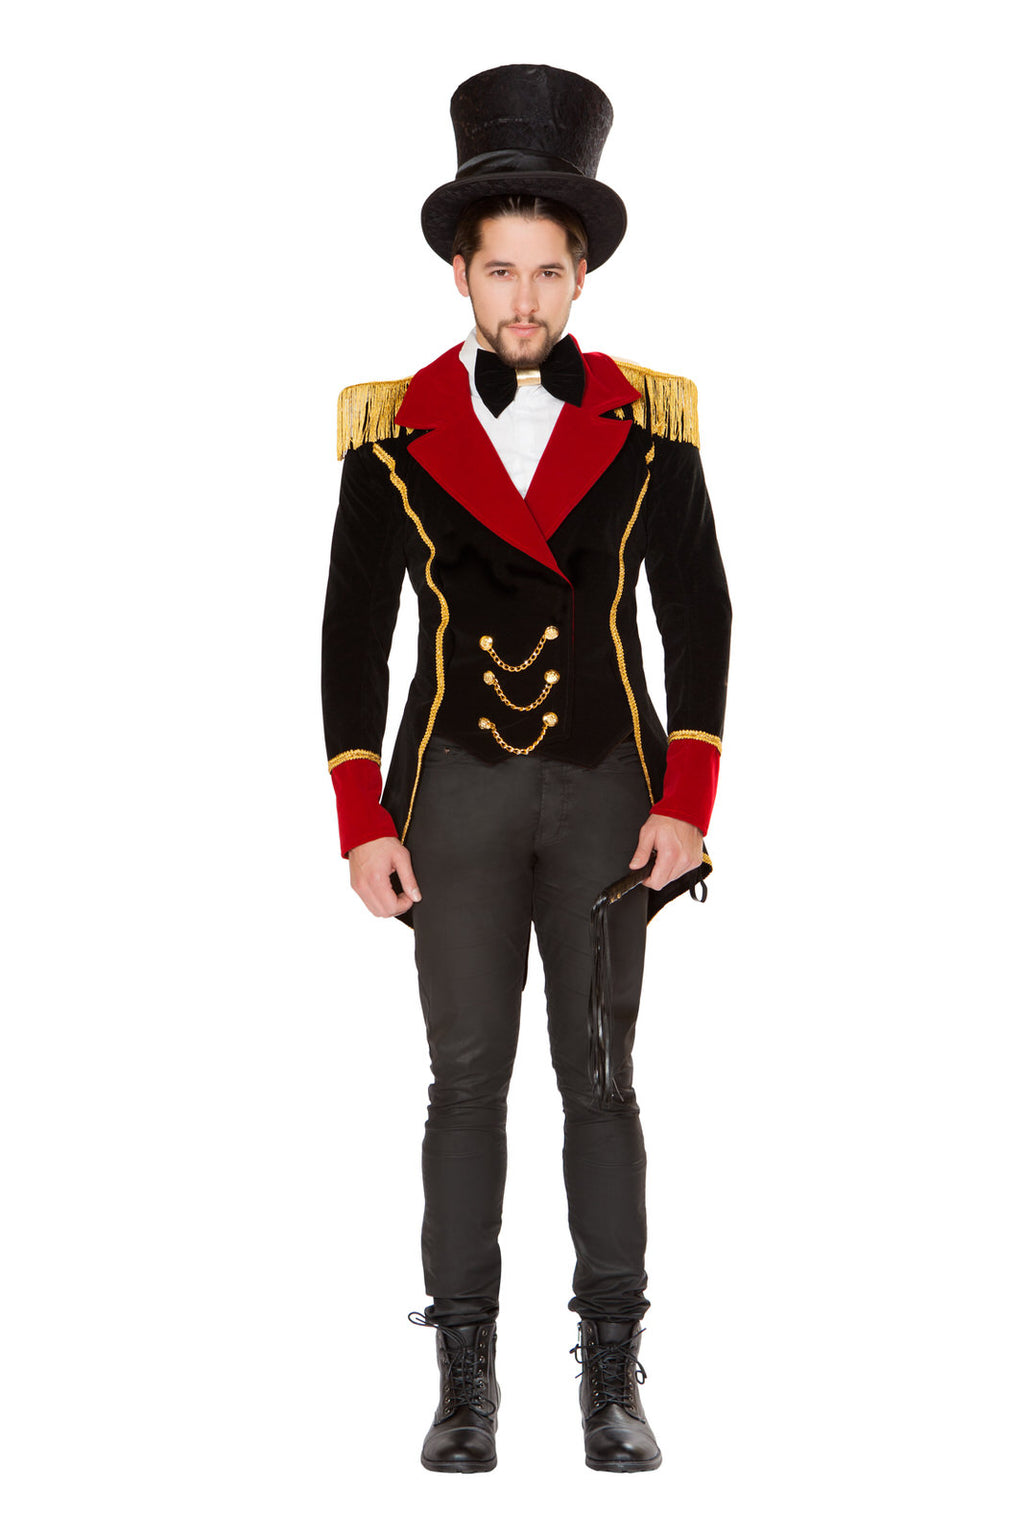 3-PC-Circus-Ringleader-Black-&-Red-Jacket-w/-Accessories-Party-Costume